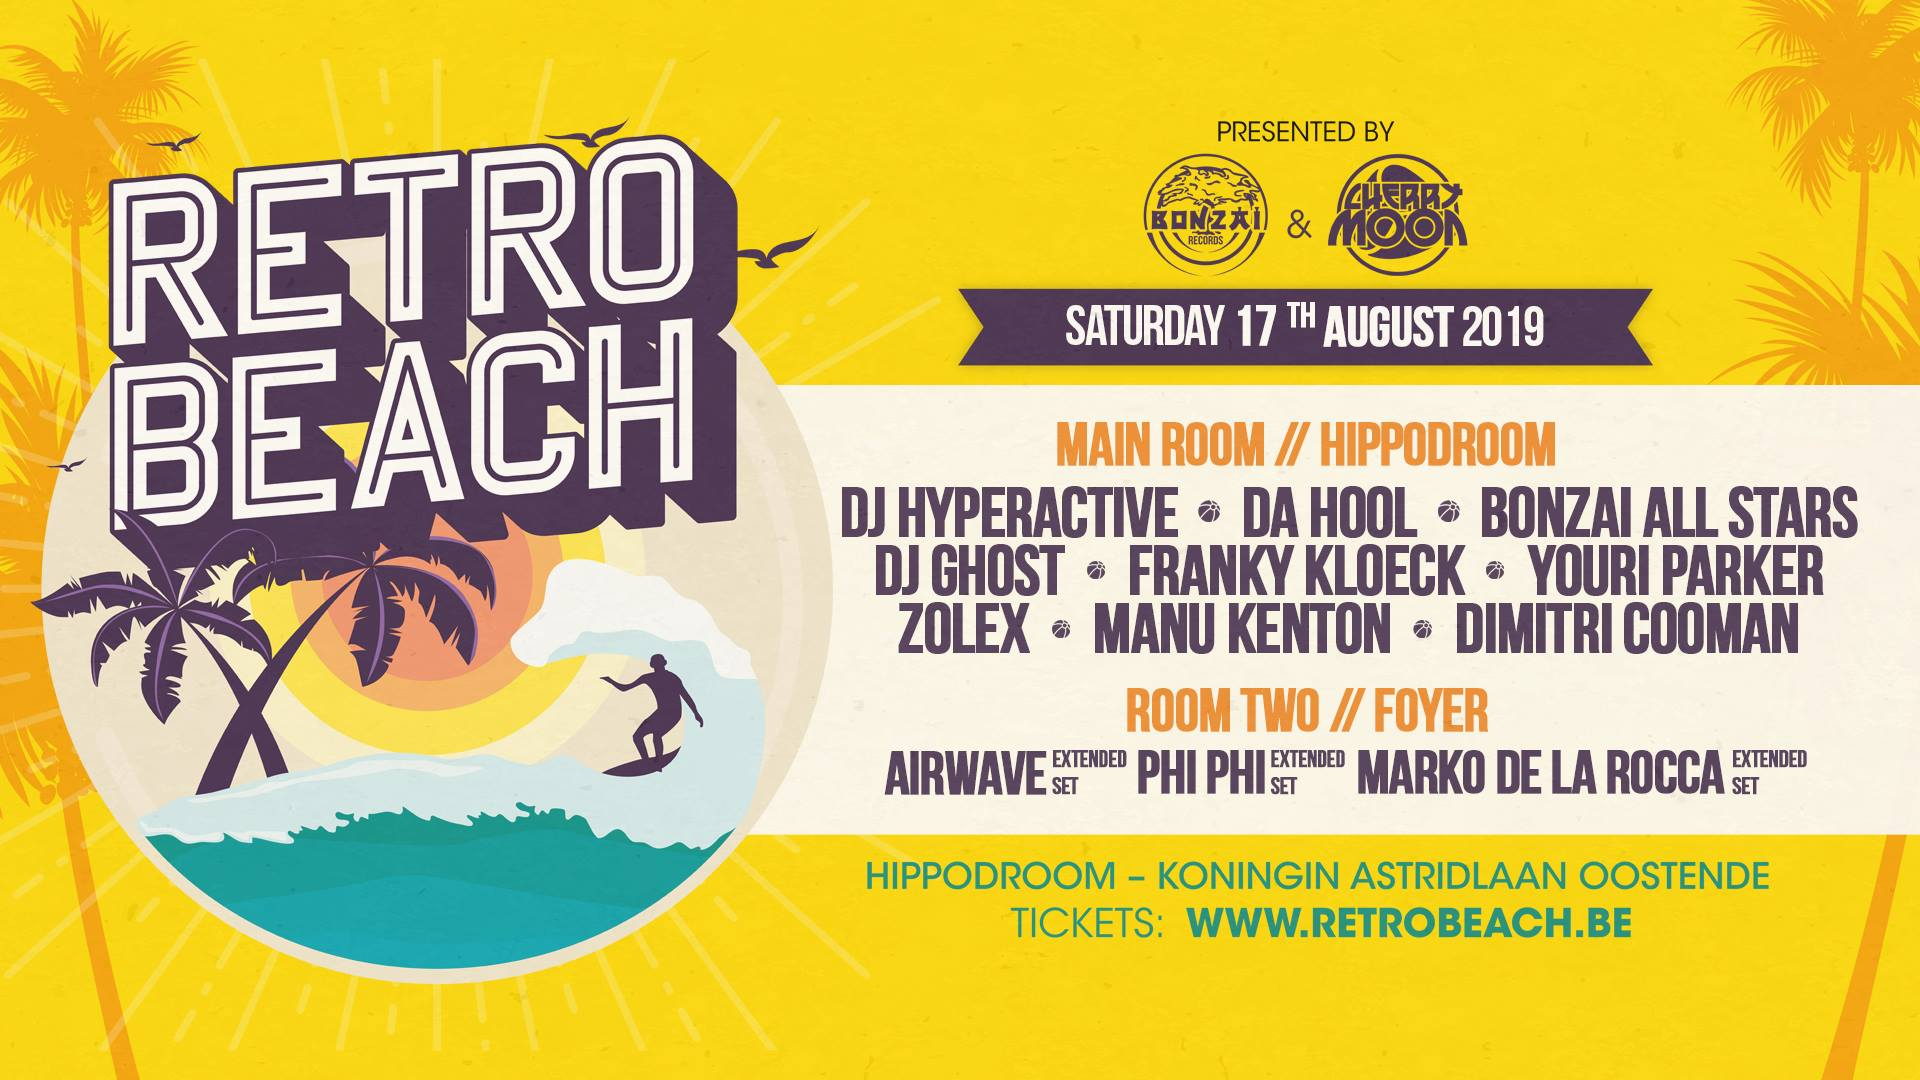 Retro Beach affiche op 17/08/2019